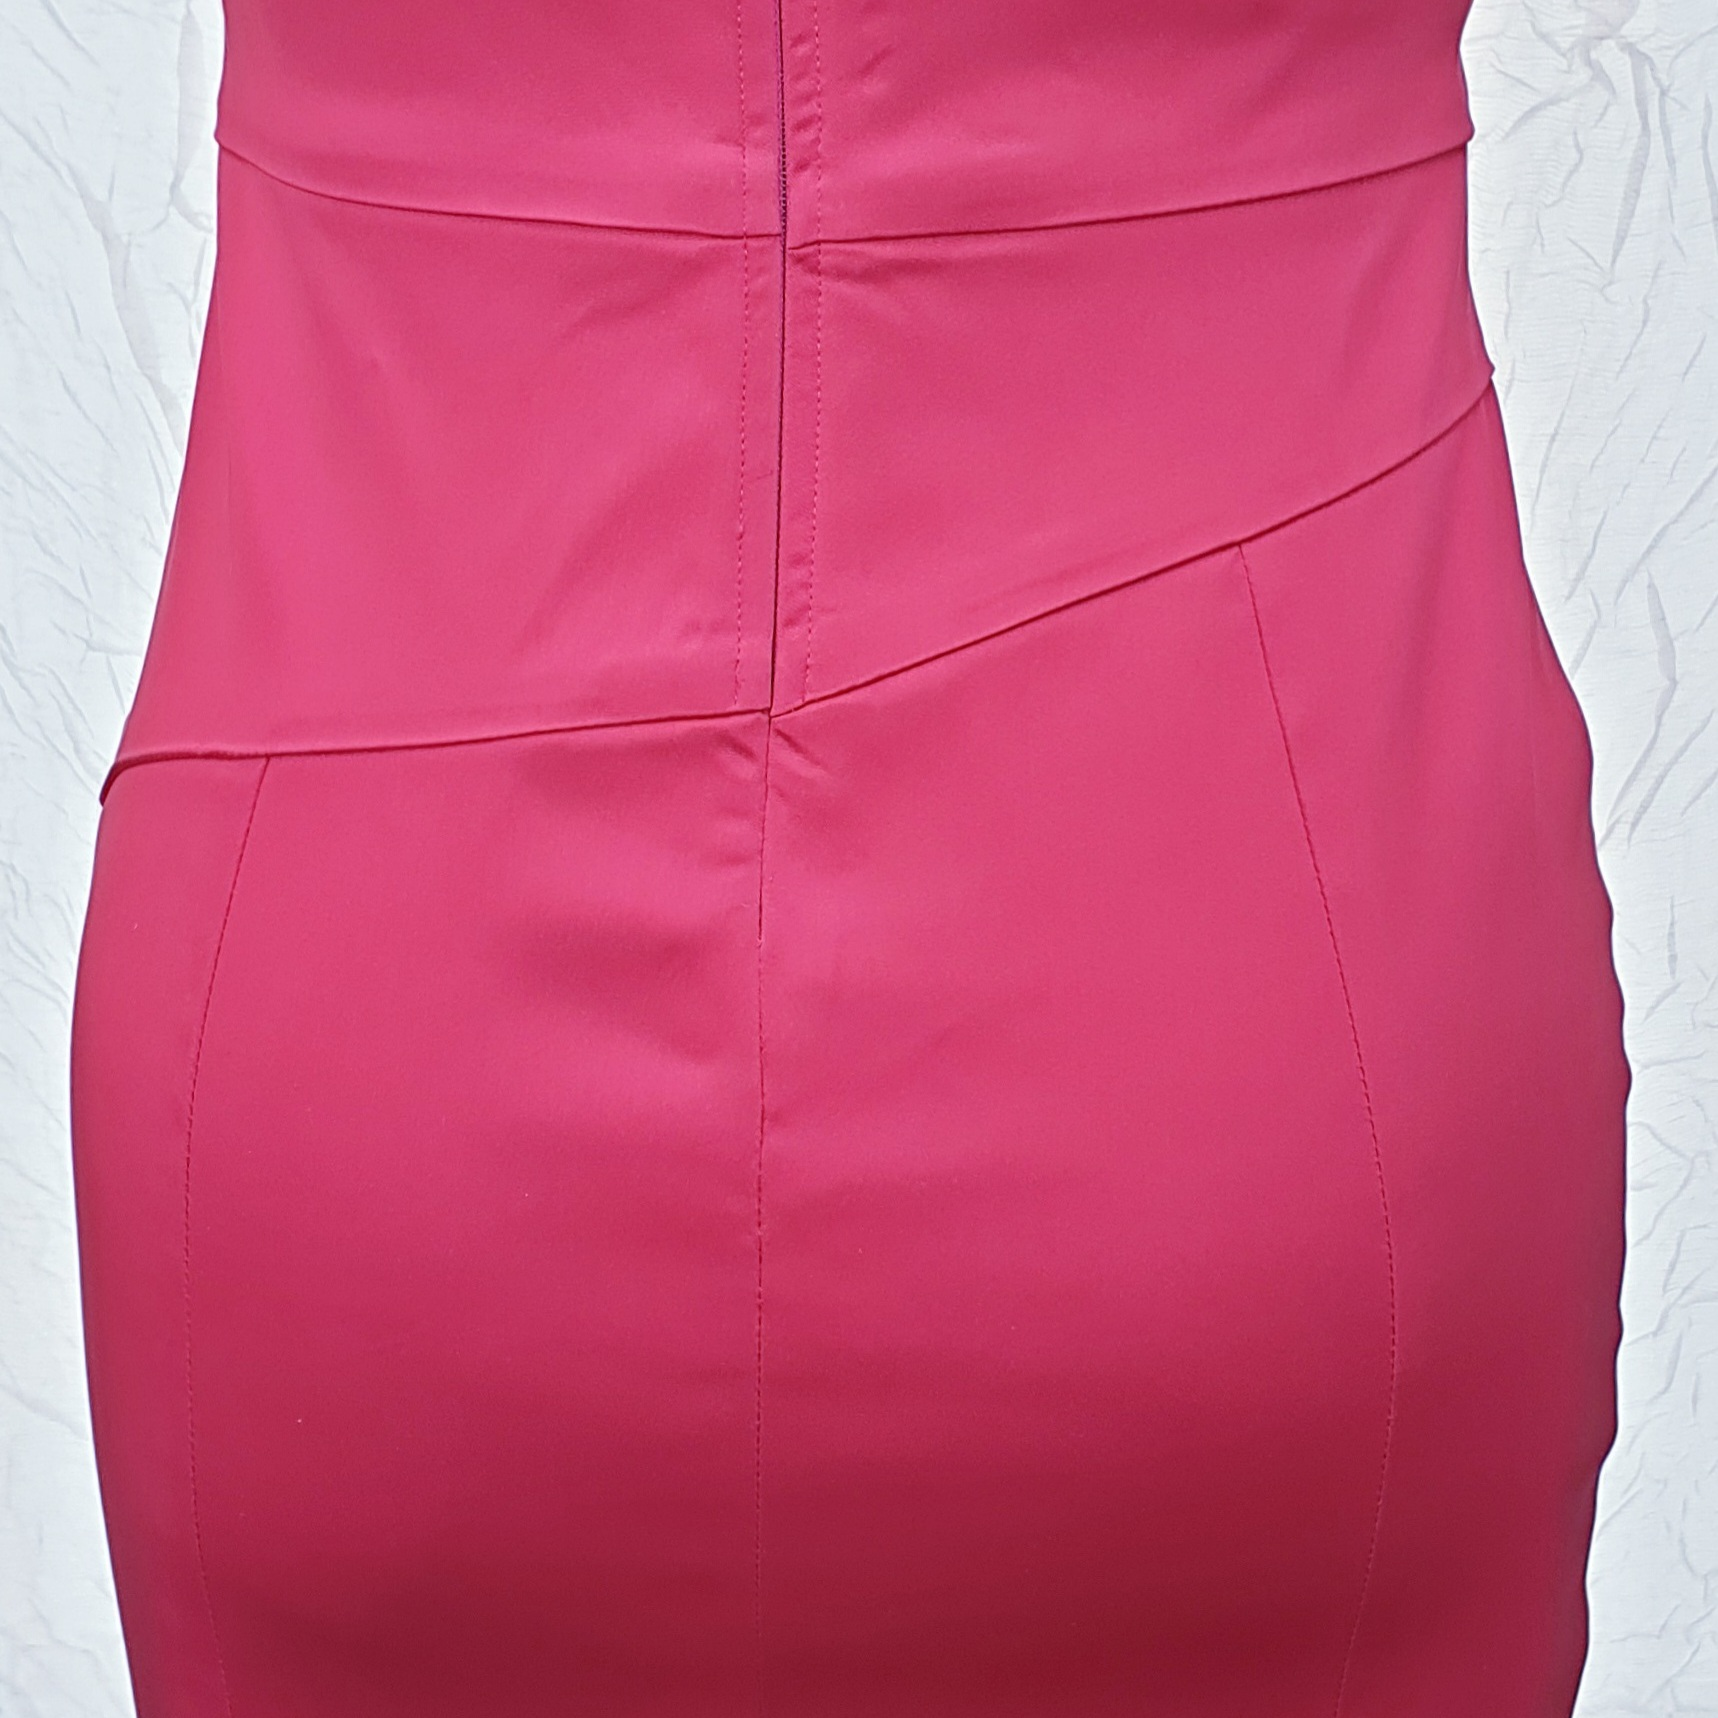 Custom made Pink fitted Dress by Kate Henry Designs